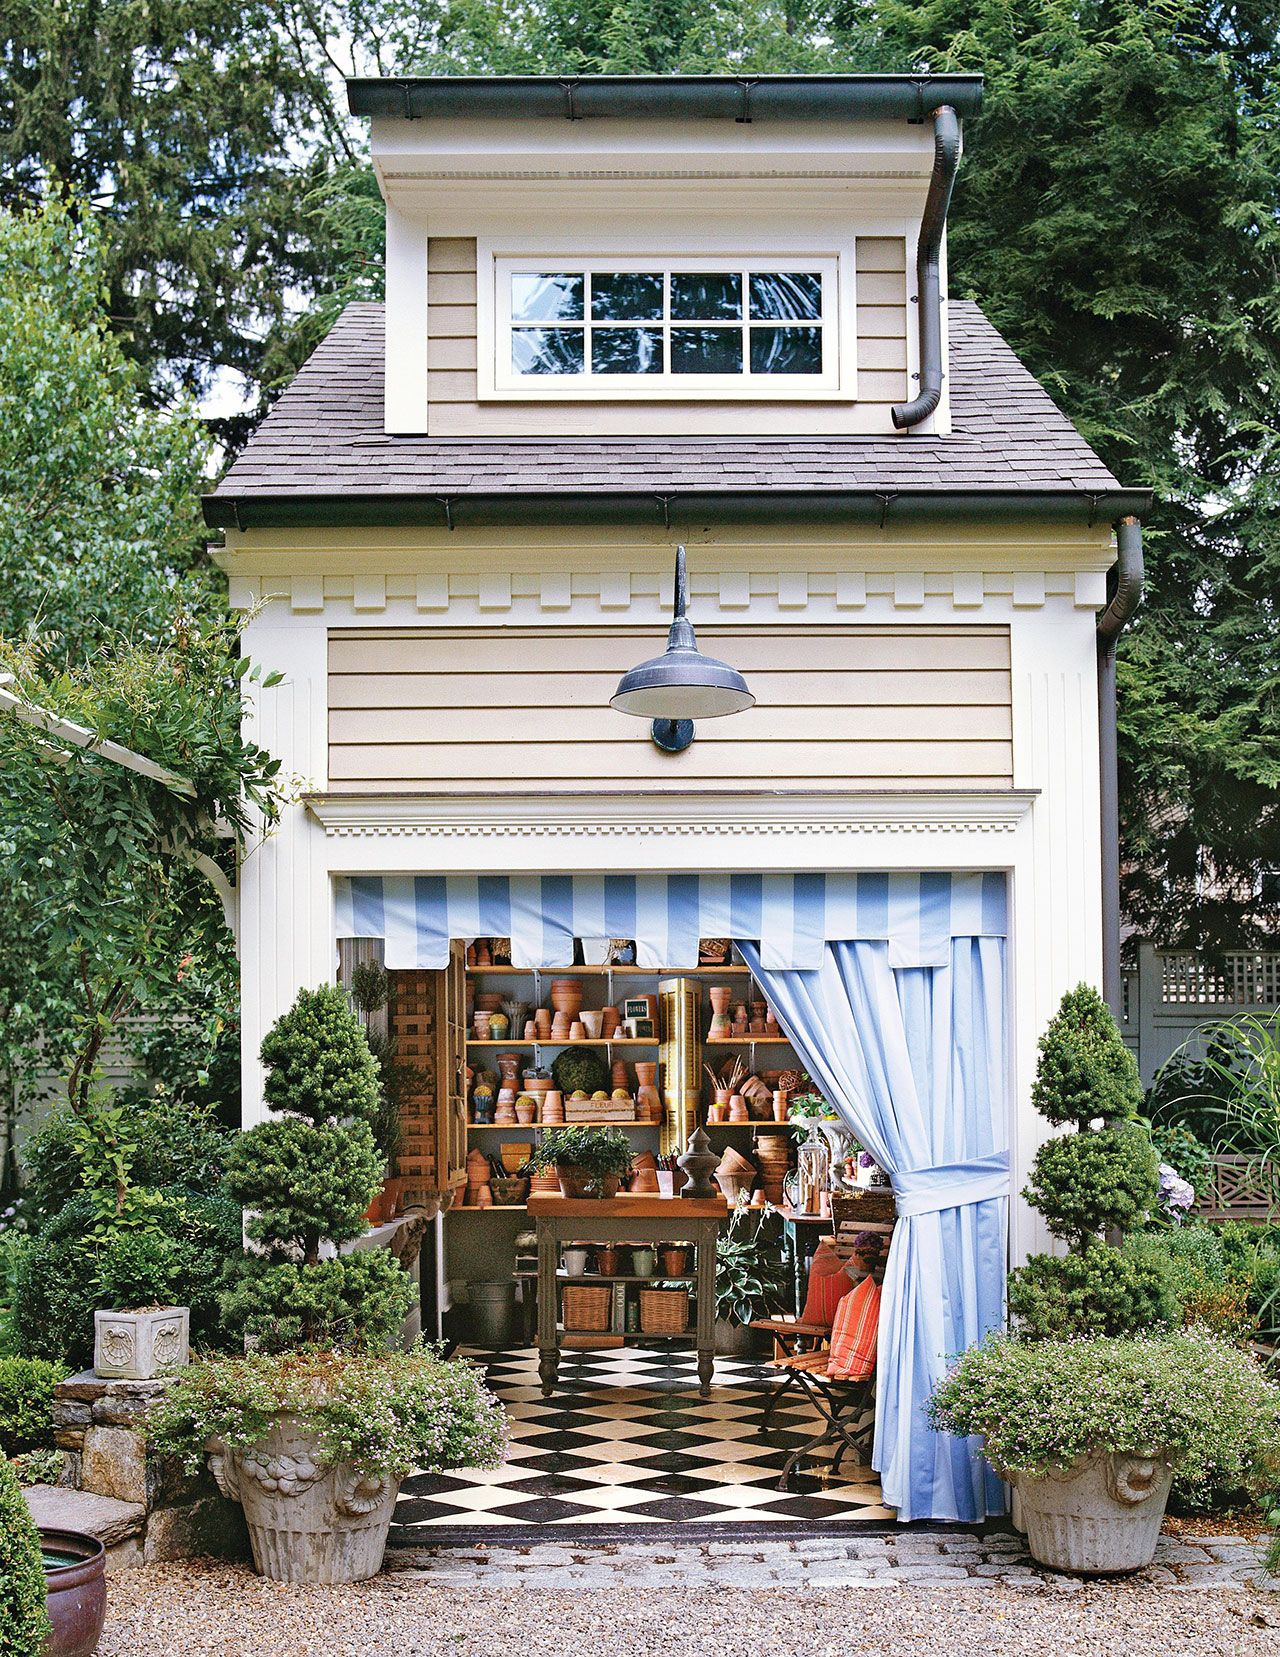 30 Garden Shed Ideas for the Ultimate Outdoor Oasis